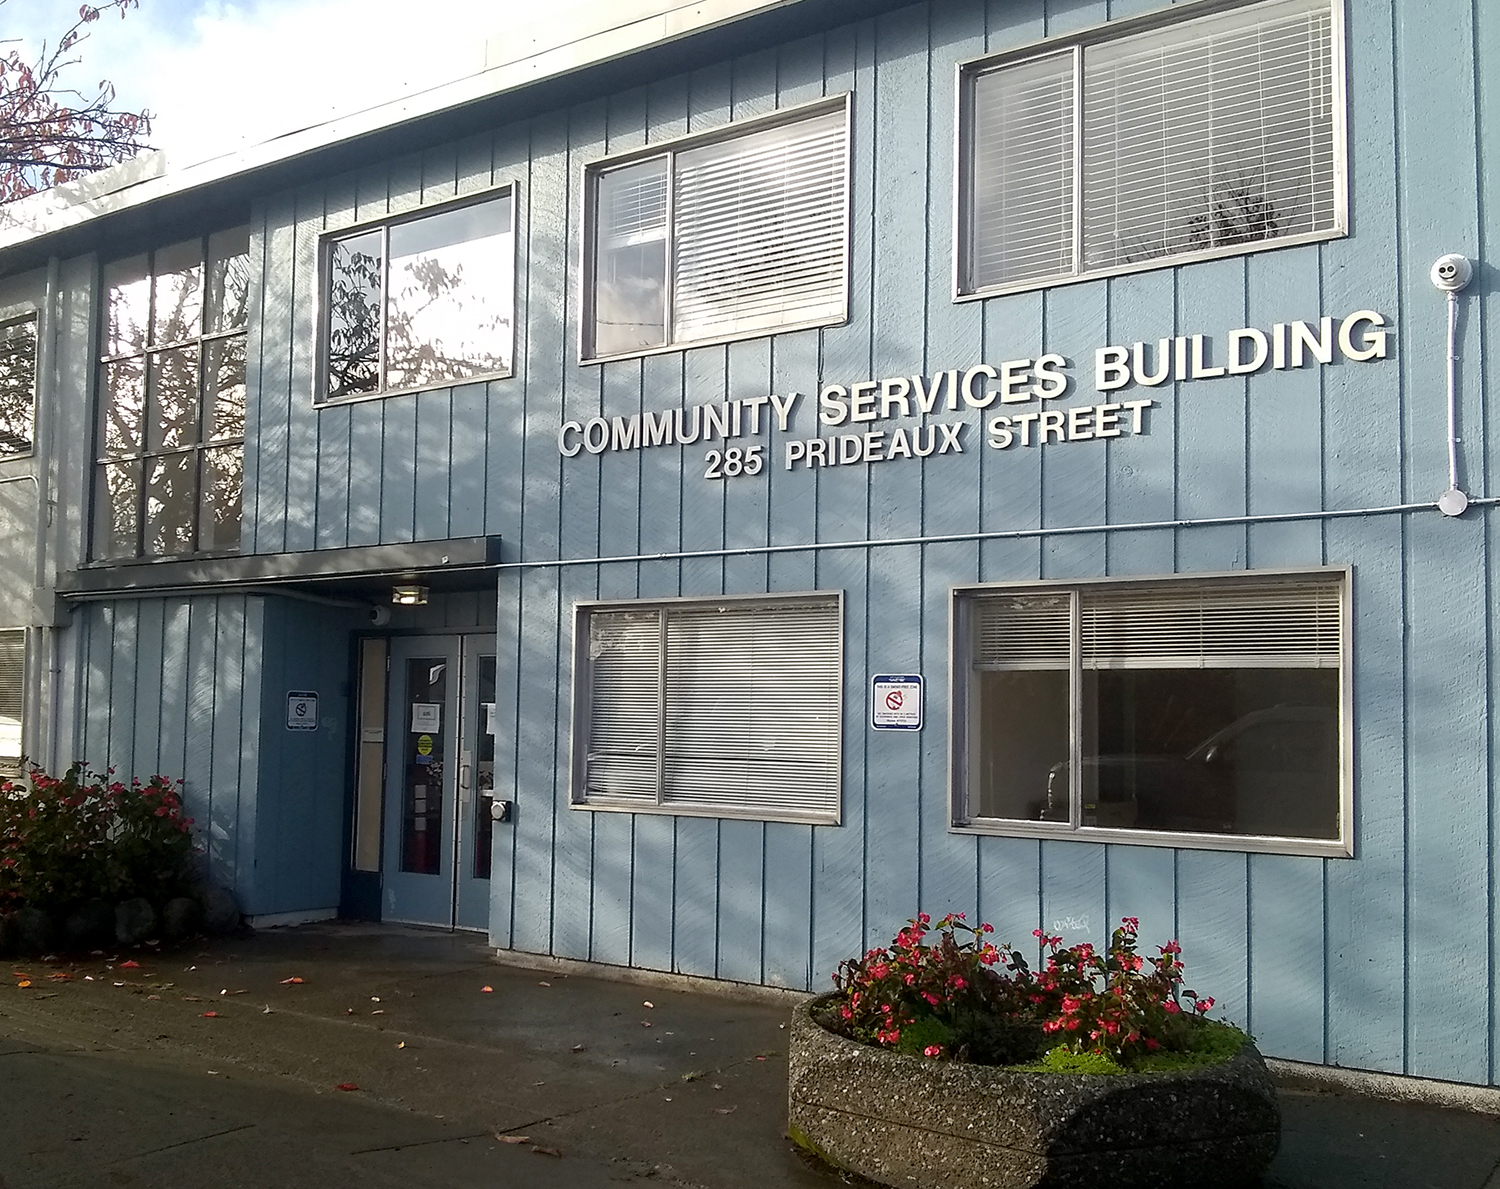 A community service building in light blue color located on Prideaux street